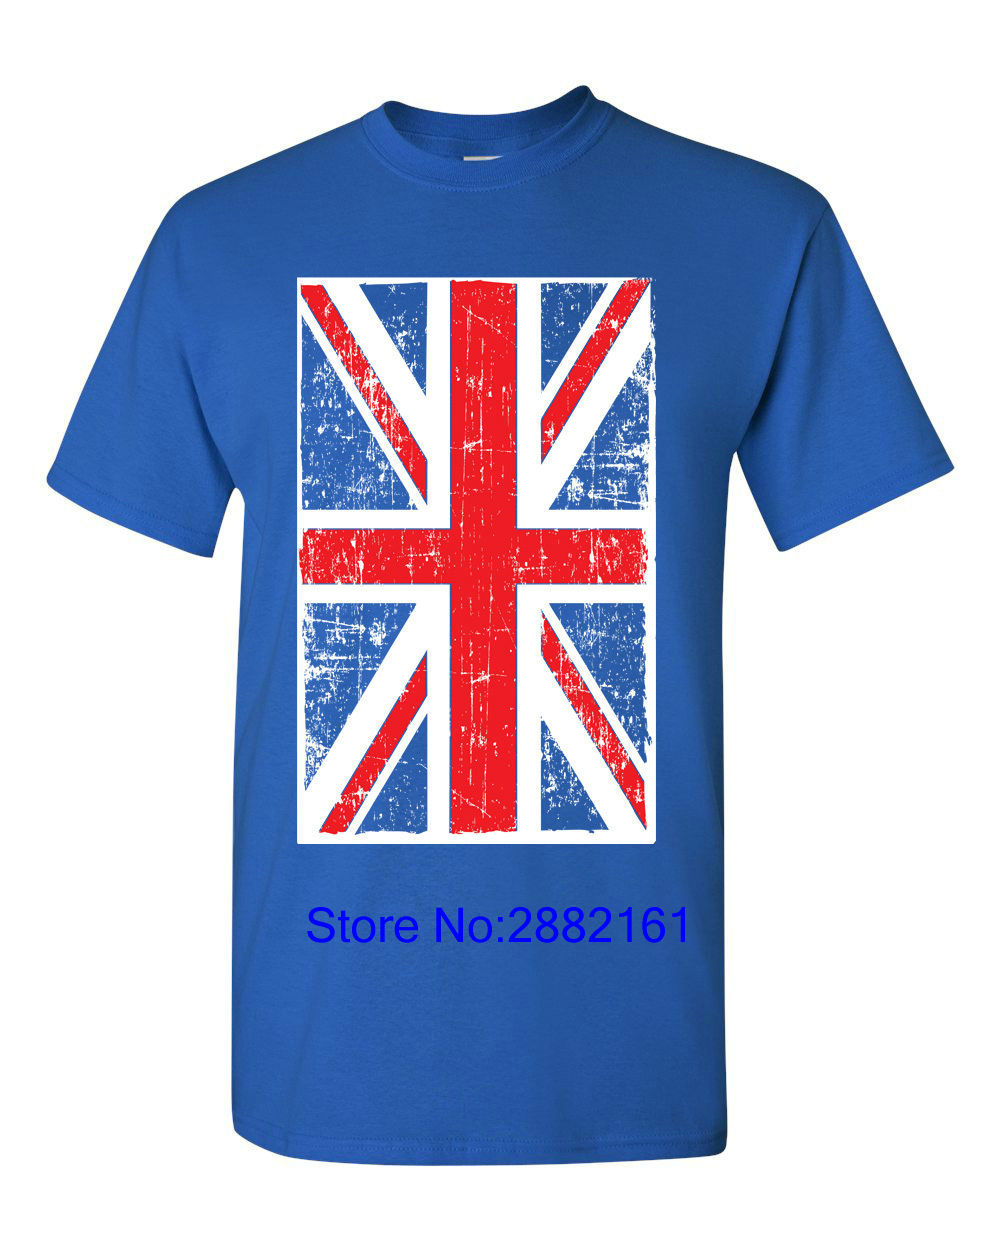 2017 New Short Sleeve Casual T-Shirt Tee British Flag Union Jack United Kingdom Flag Britain Men's Tee Shirt 1143